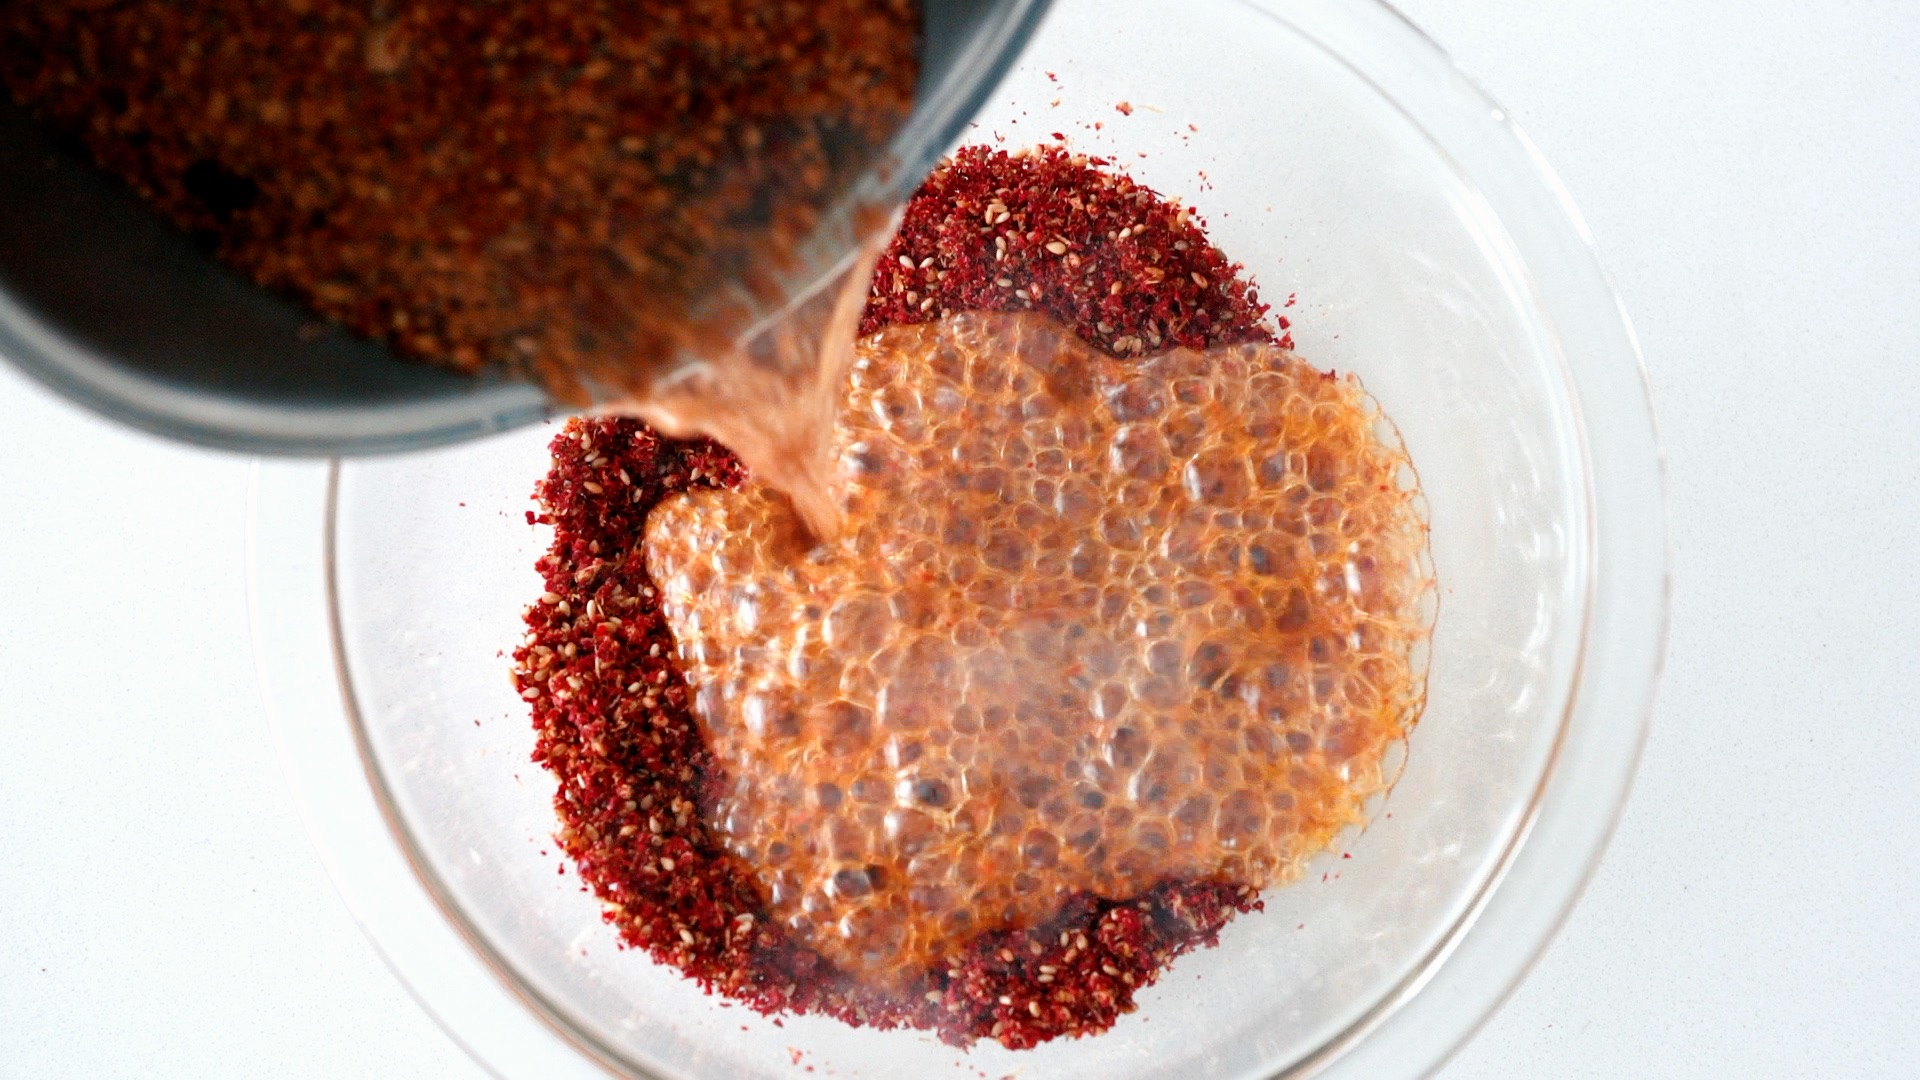 Infusing hot oil with chili pepper flakes for making Sichuan Chili Oil.